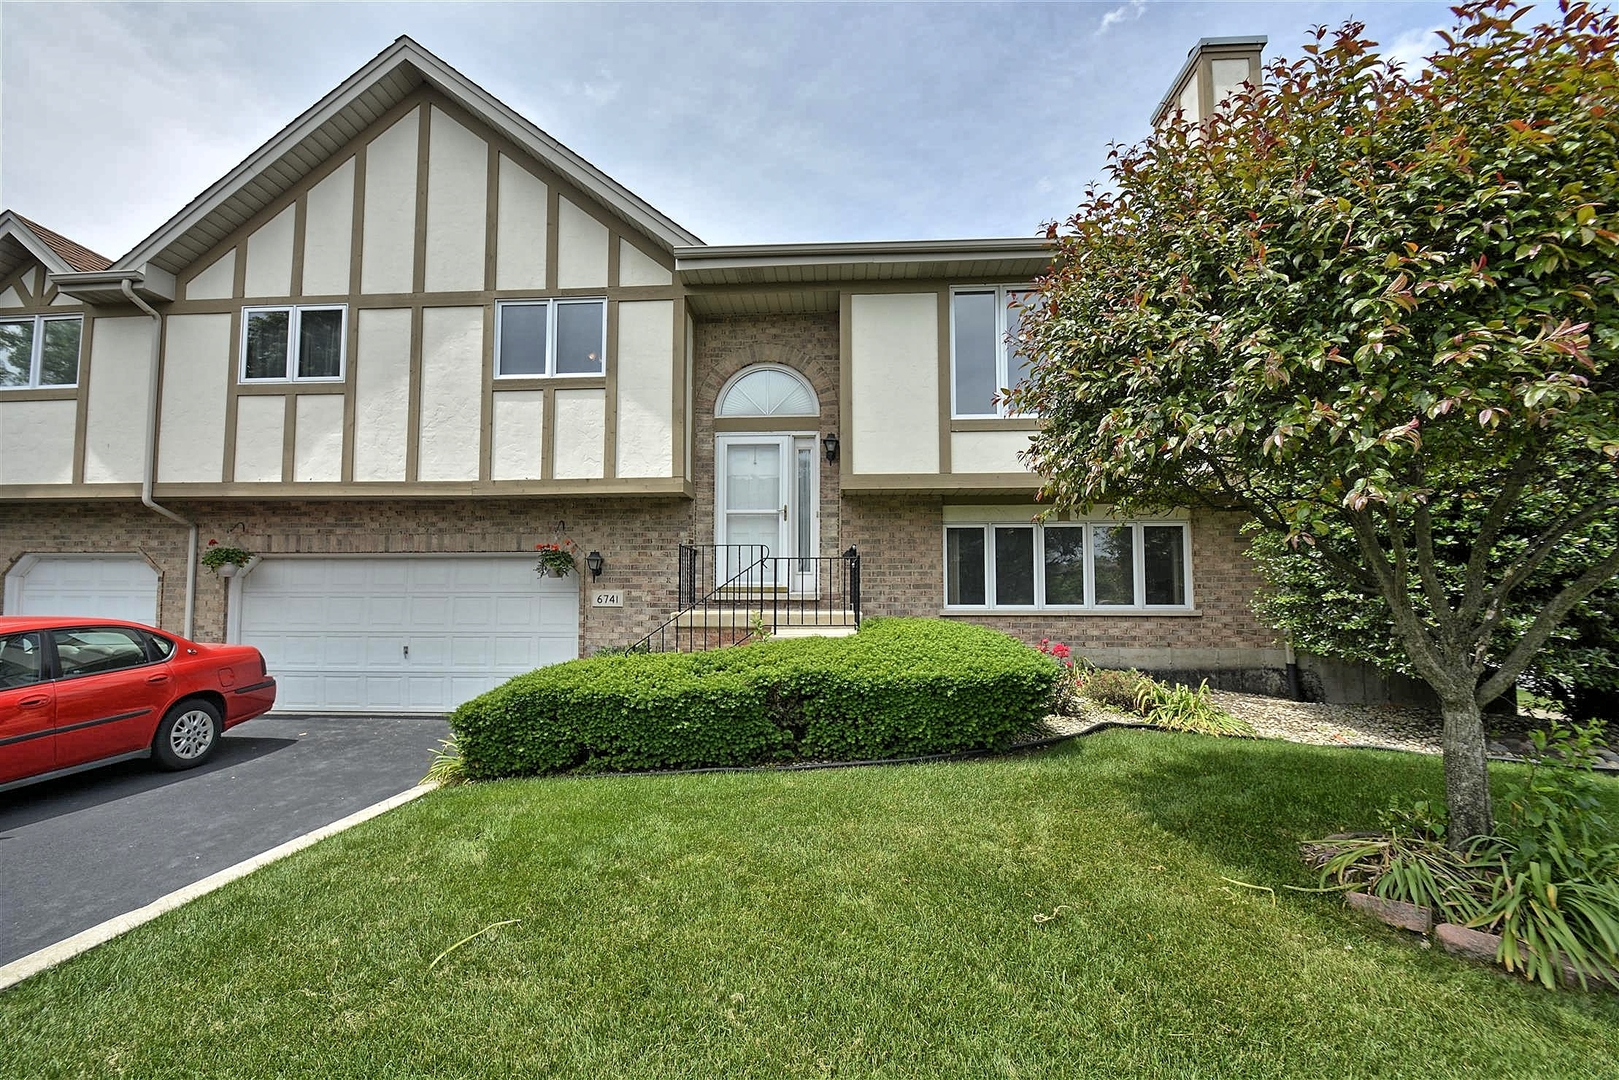 6741 181st Street, Tinley Park in Cook County, IL 60477 Home for Sale